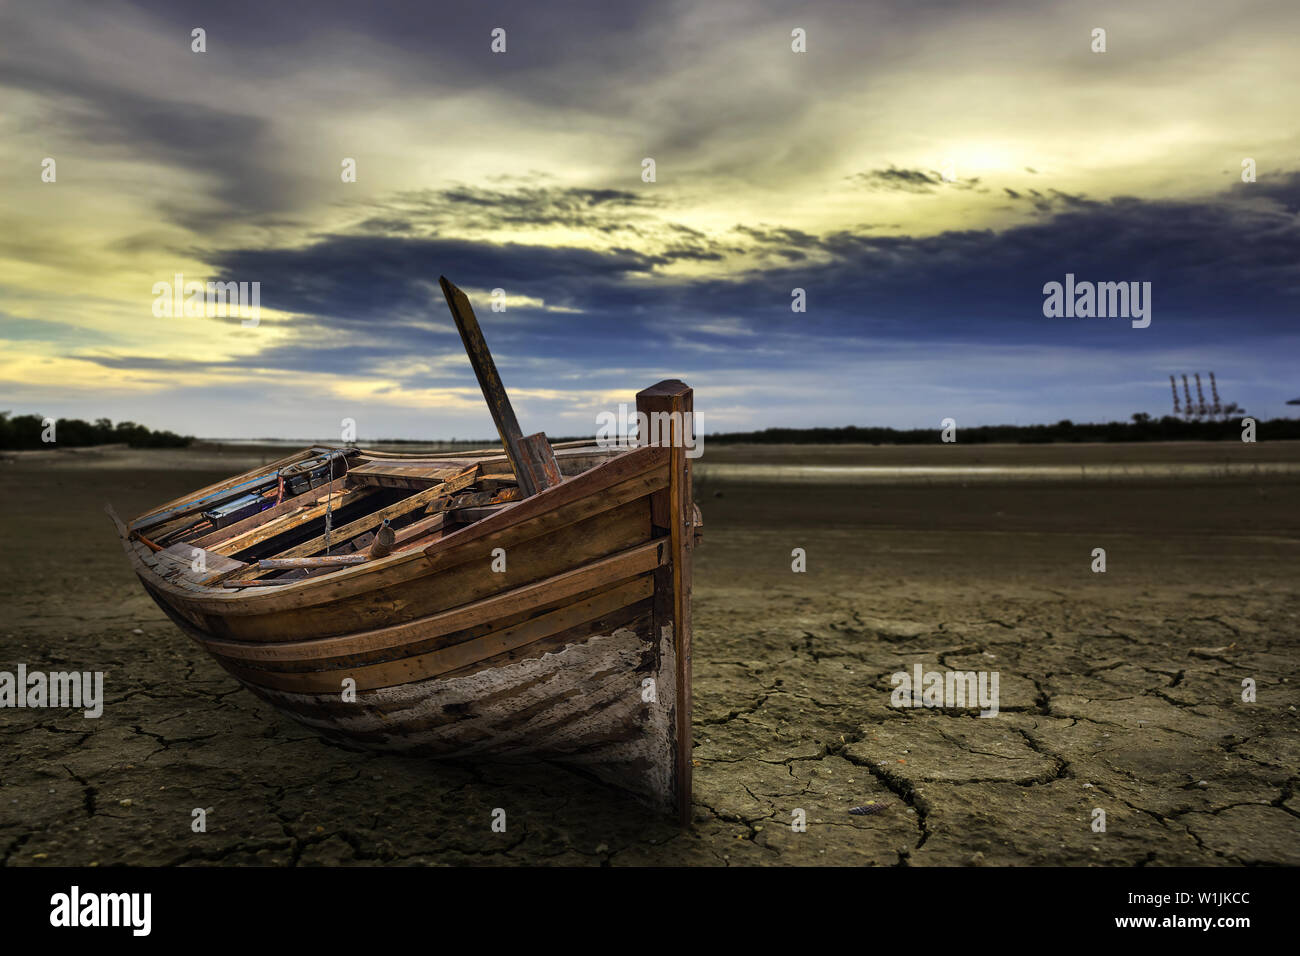 Boat crash landing land with dry and cracked ground. Desert - Stock Image